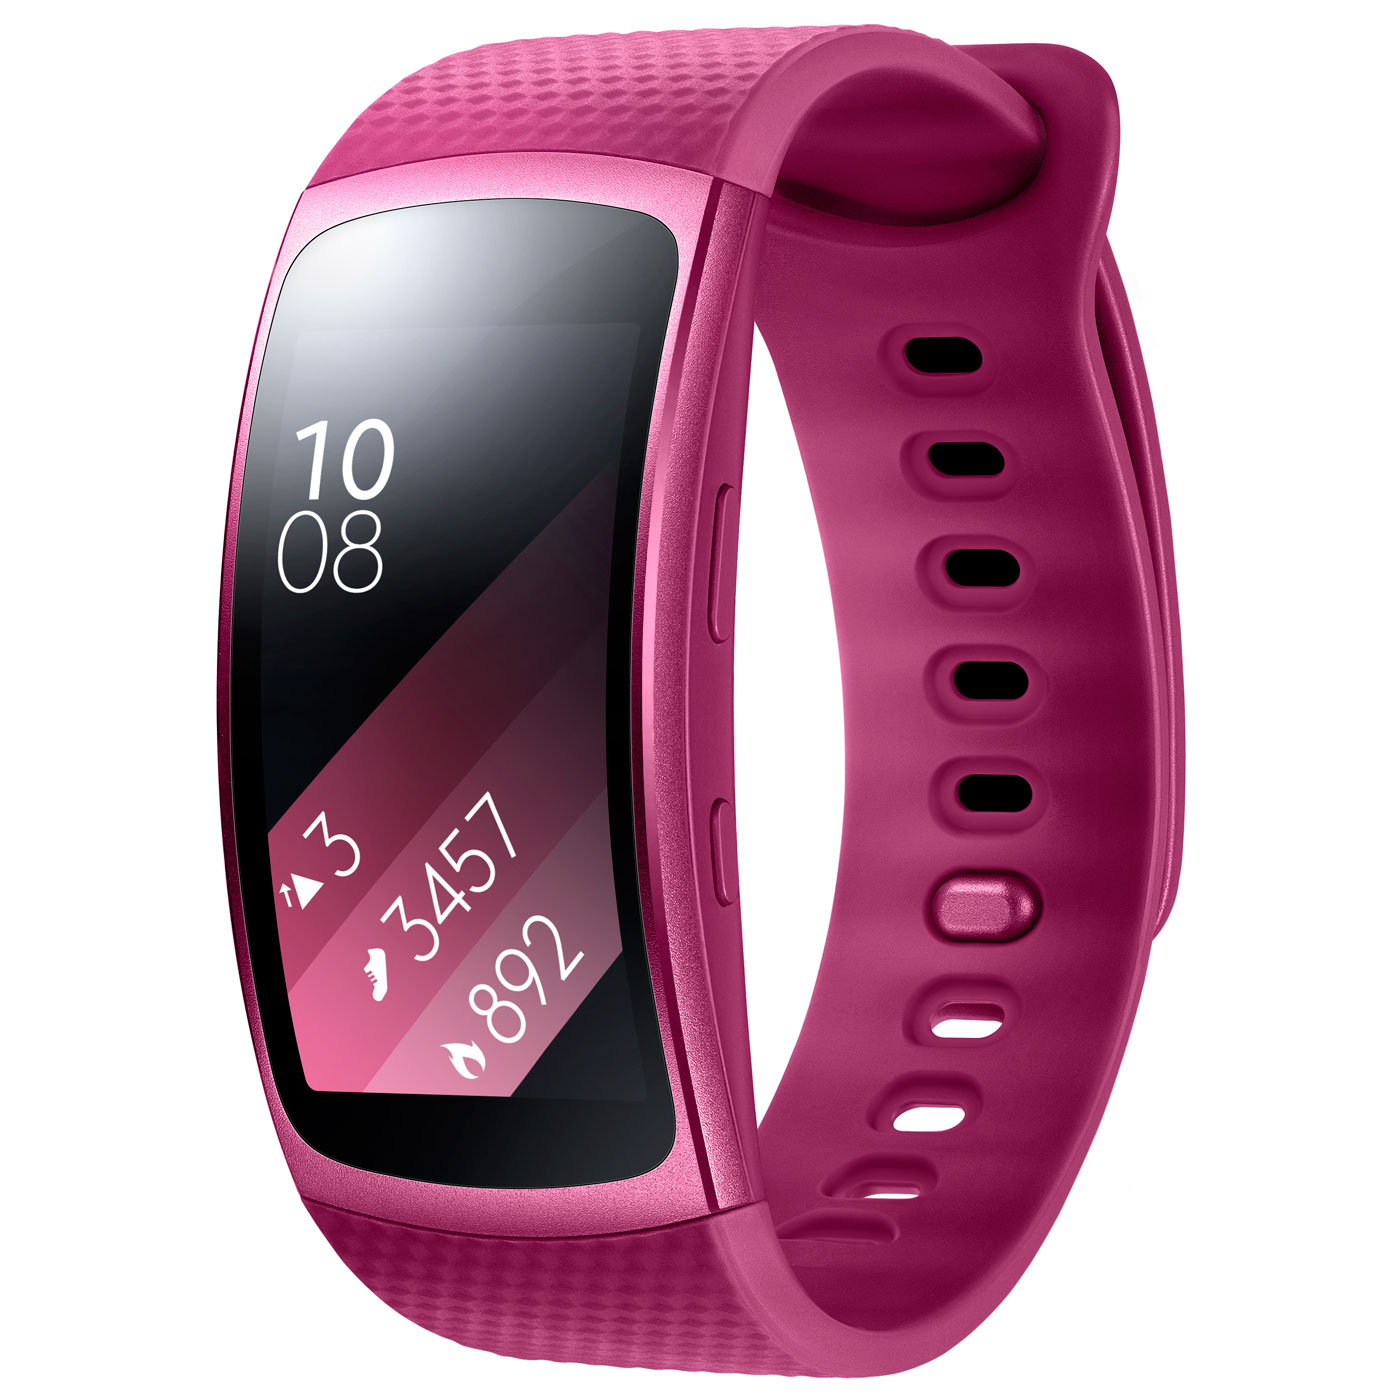 samsung gear fit2 l rose sm r3600ziaxef achat accessoires t l phone samsung pour. Black Bedroom Furniture Sets. Home Design Ideas